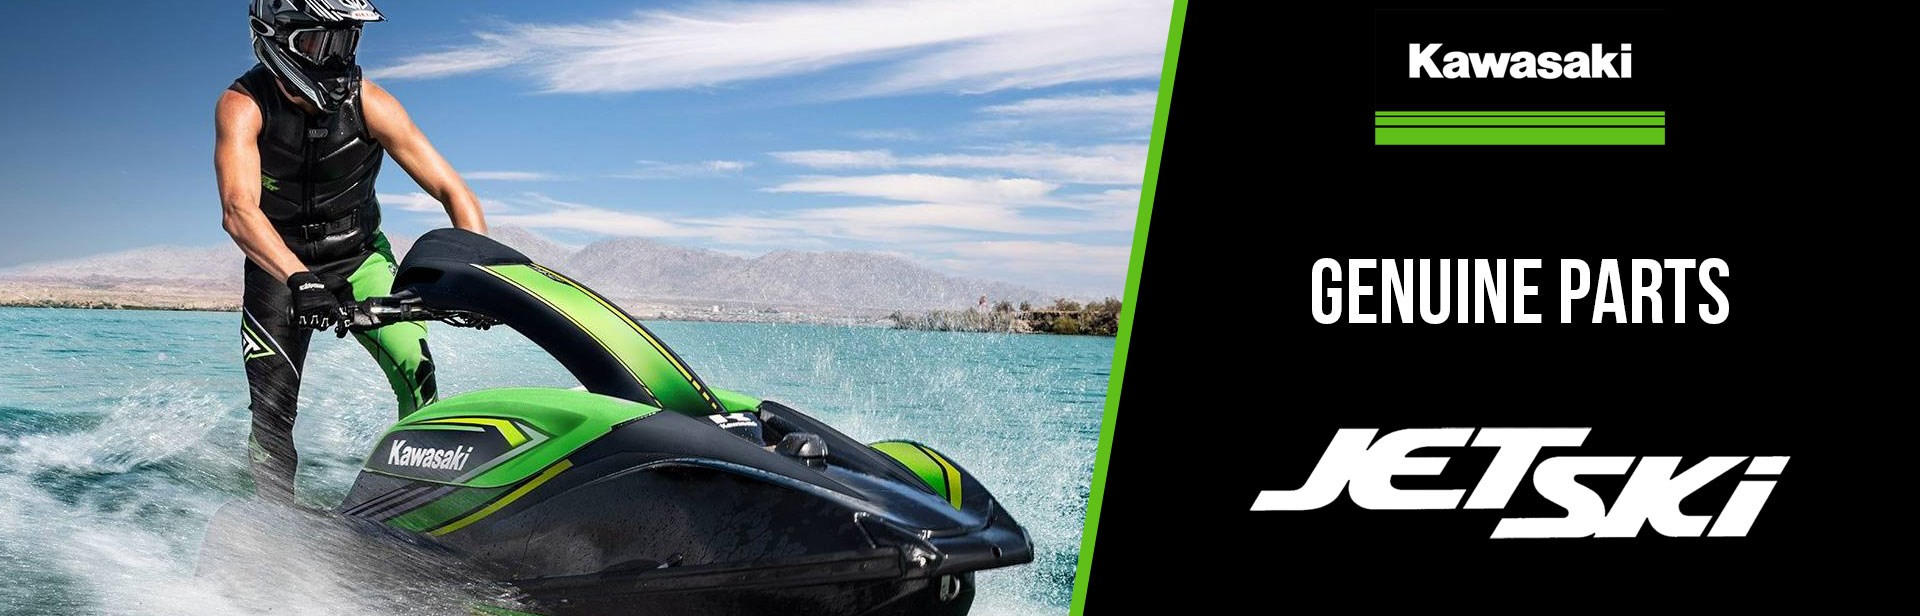 Find Genuine Parts for your Kawasaki Watercraft